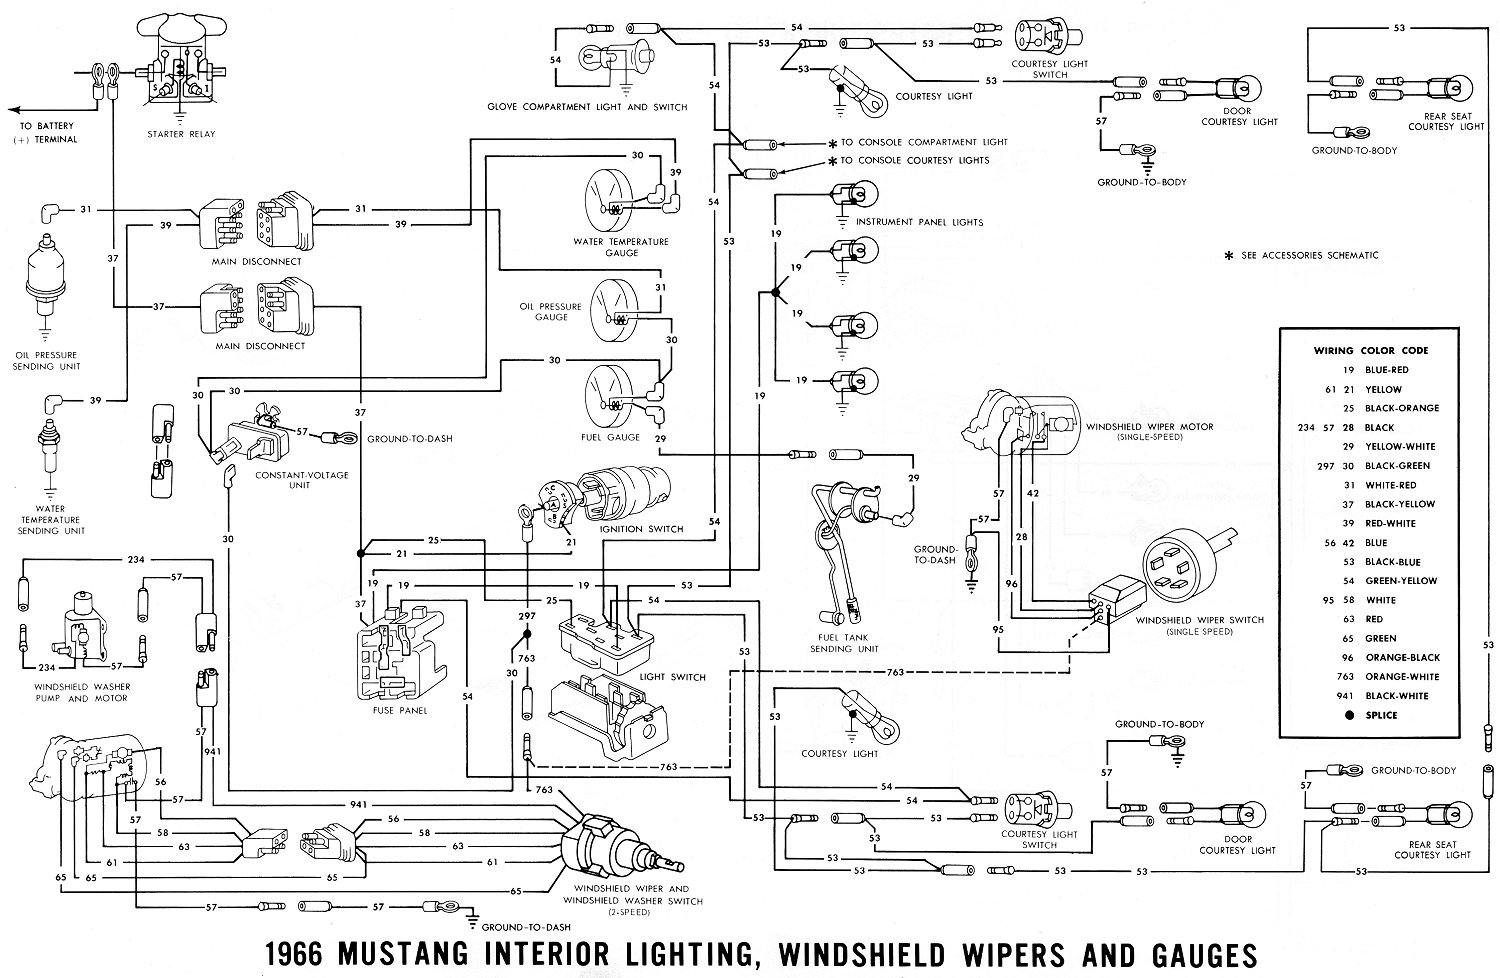 dodge alternator wiring diagram with Ments on 1965 Mustang Wiring Diagrams in addition Gmc Sierra Truck Bed Diagram as well ments additionally Free Ford Wiring Diagrams further Wiring.